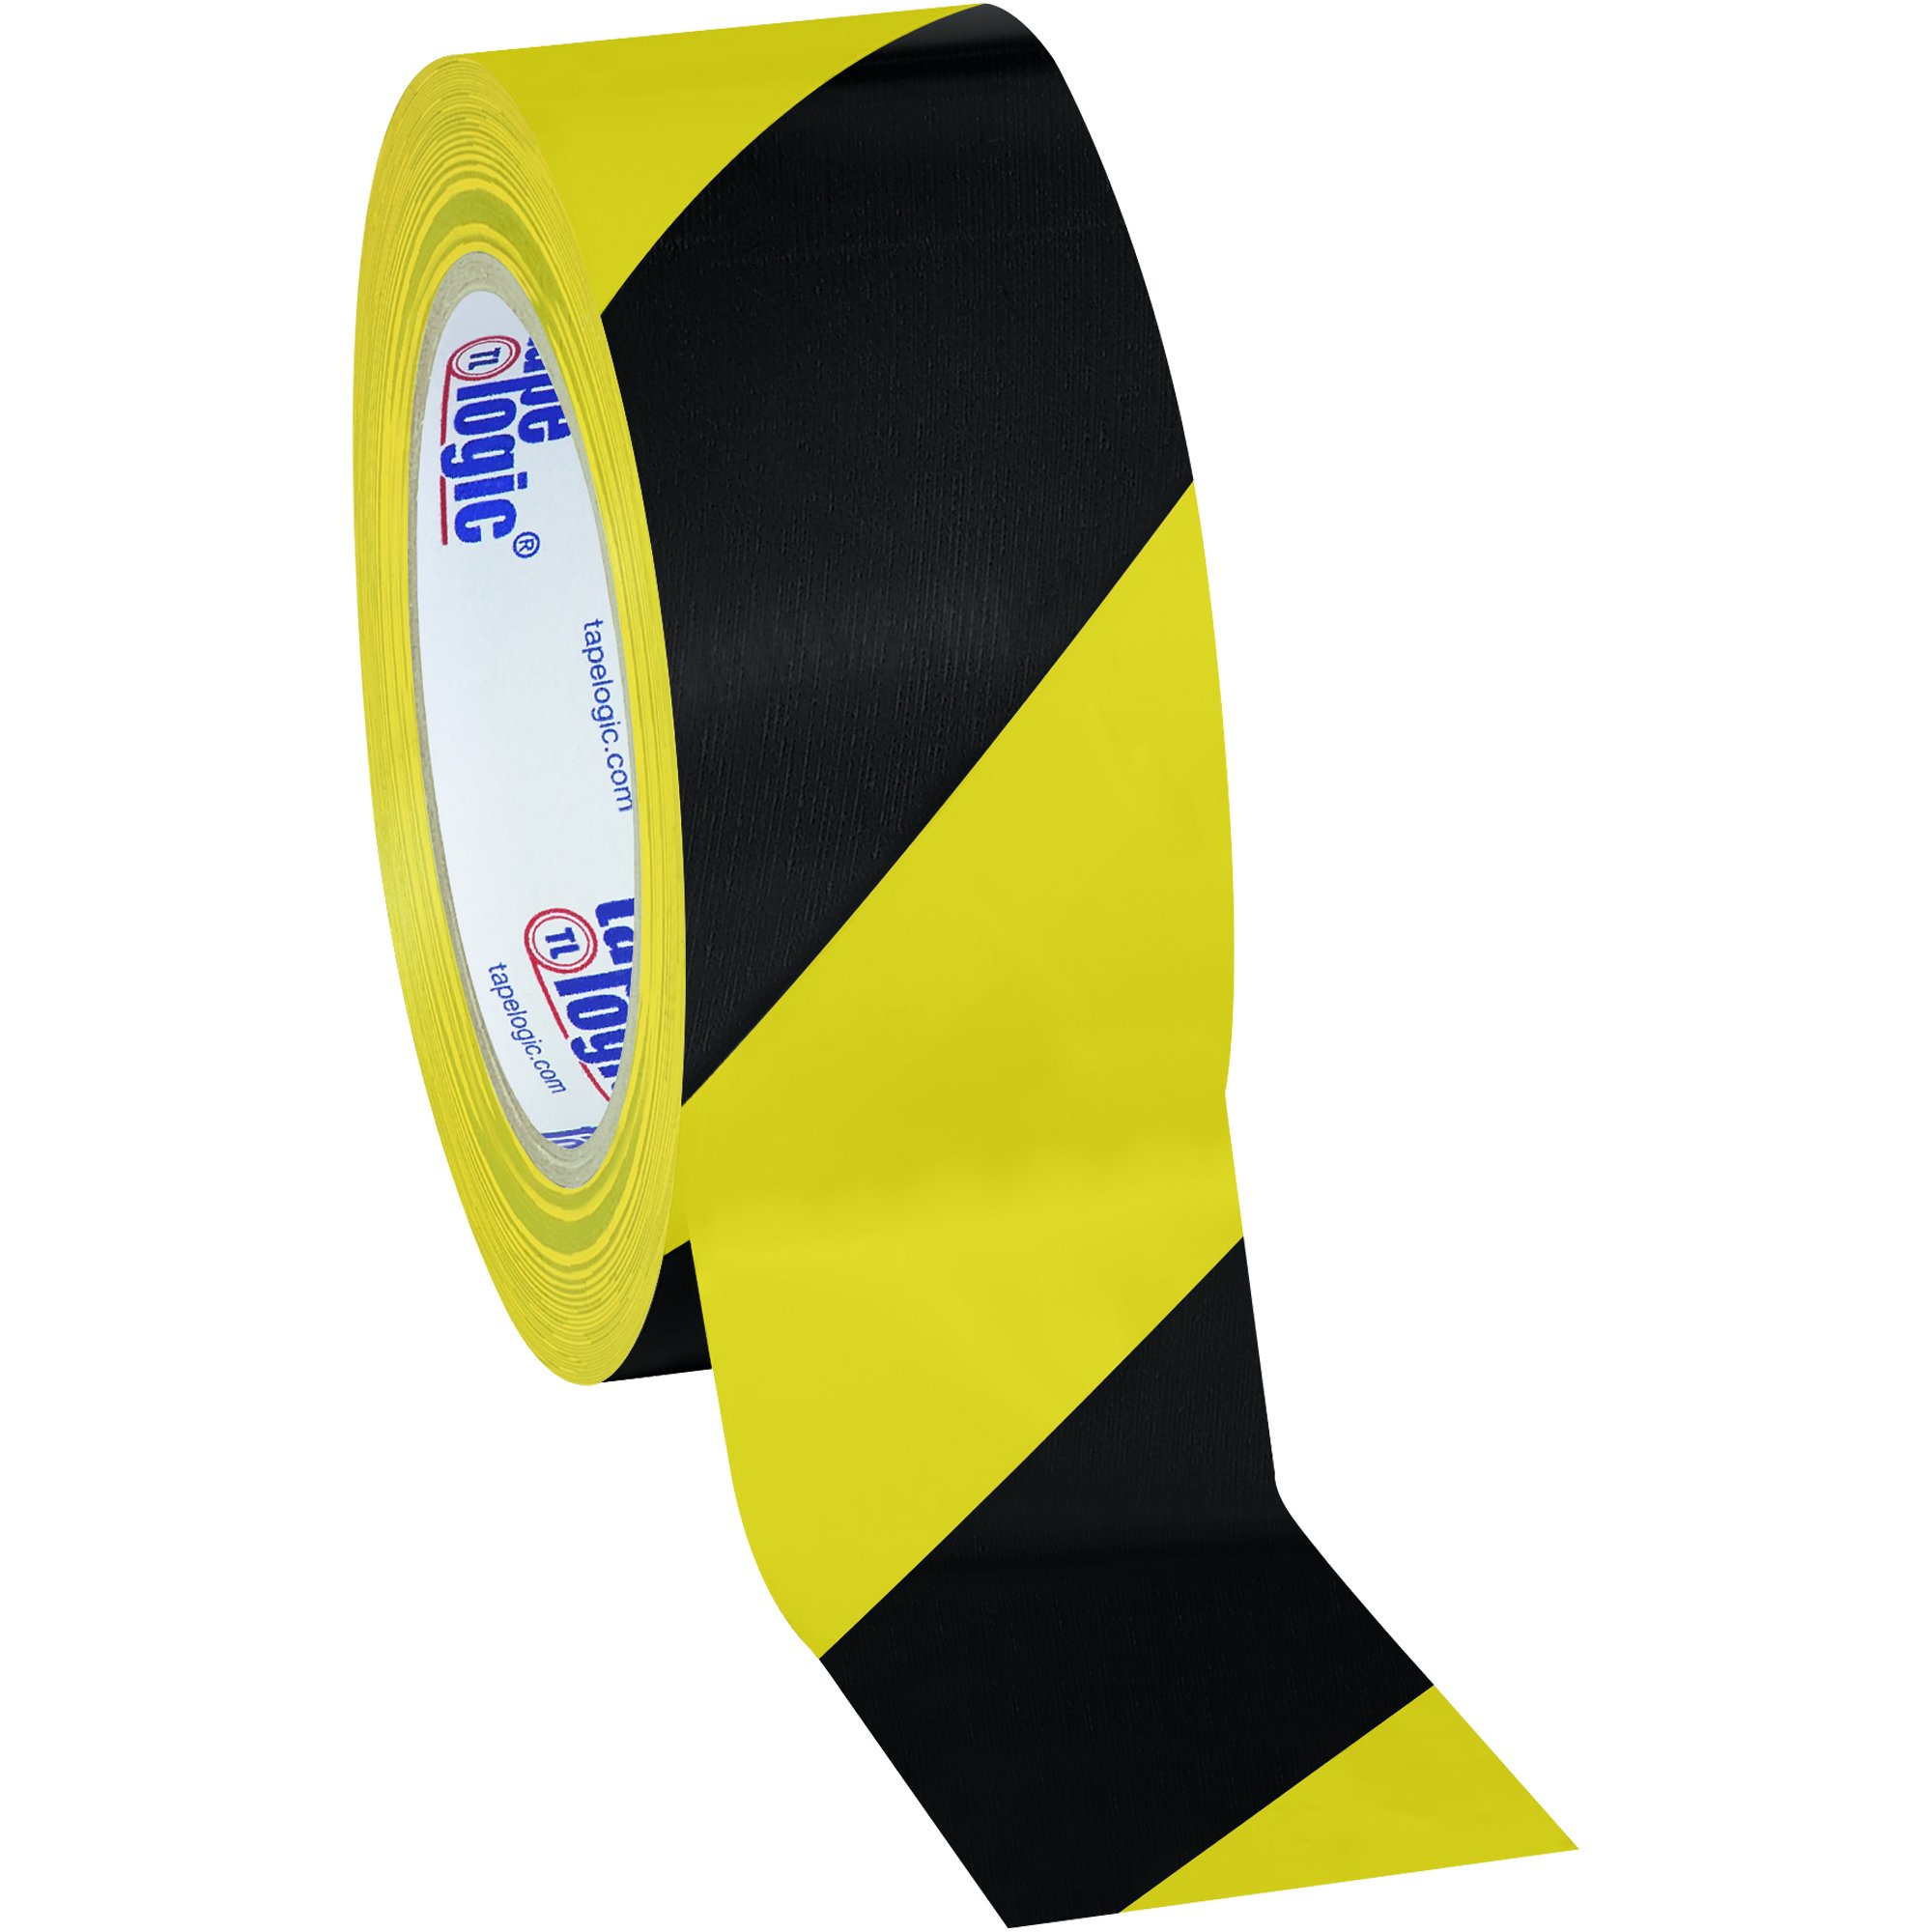 Aviditi T9236BY Heavy Duty Striped Vinyl Safety Tape, 36 yds Length x 2'' Width, 7 mil Thick, Black/Yellow (Case of 24)